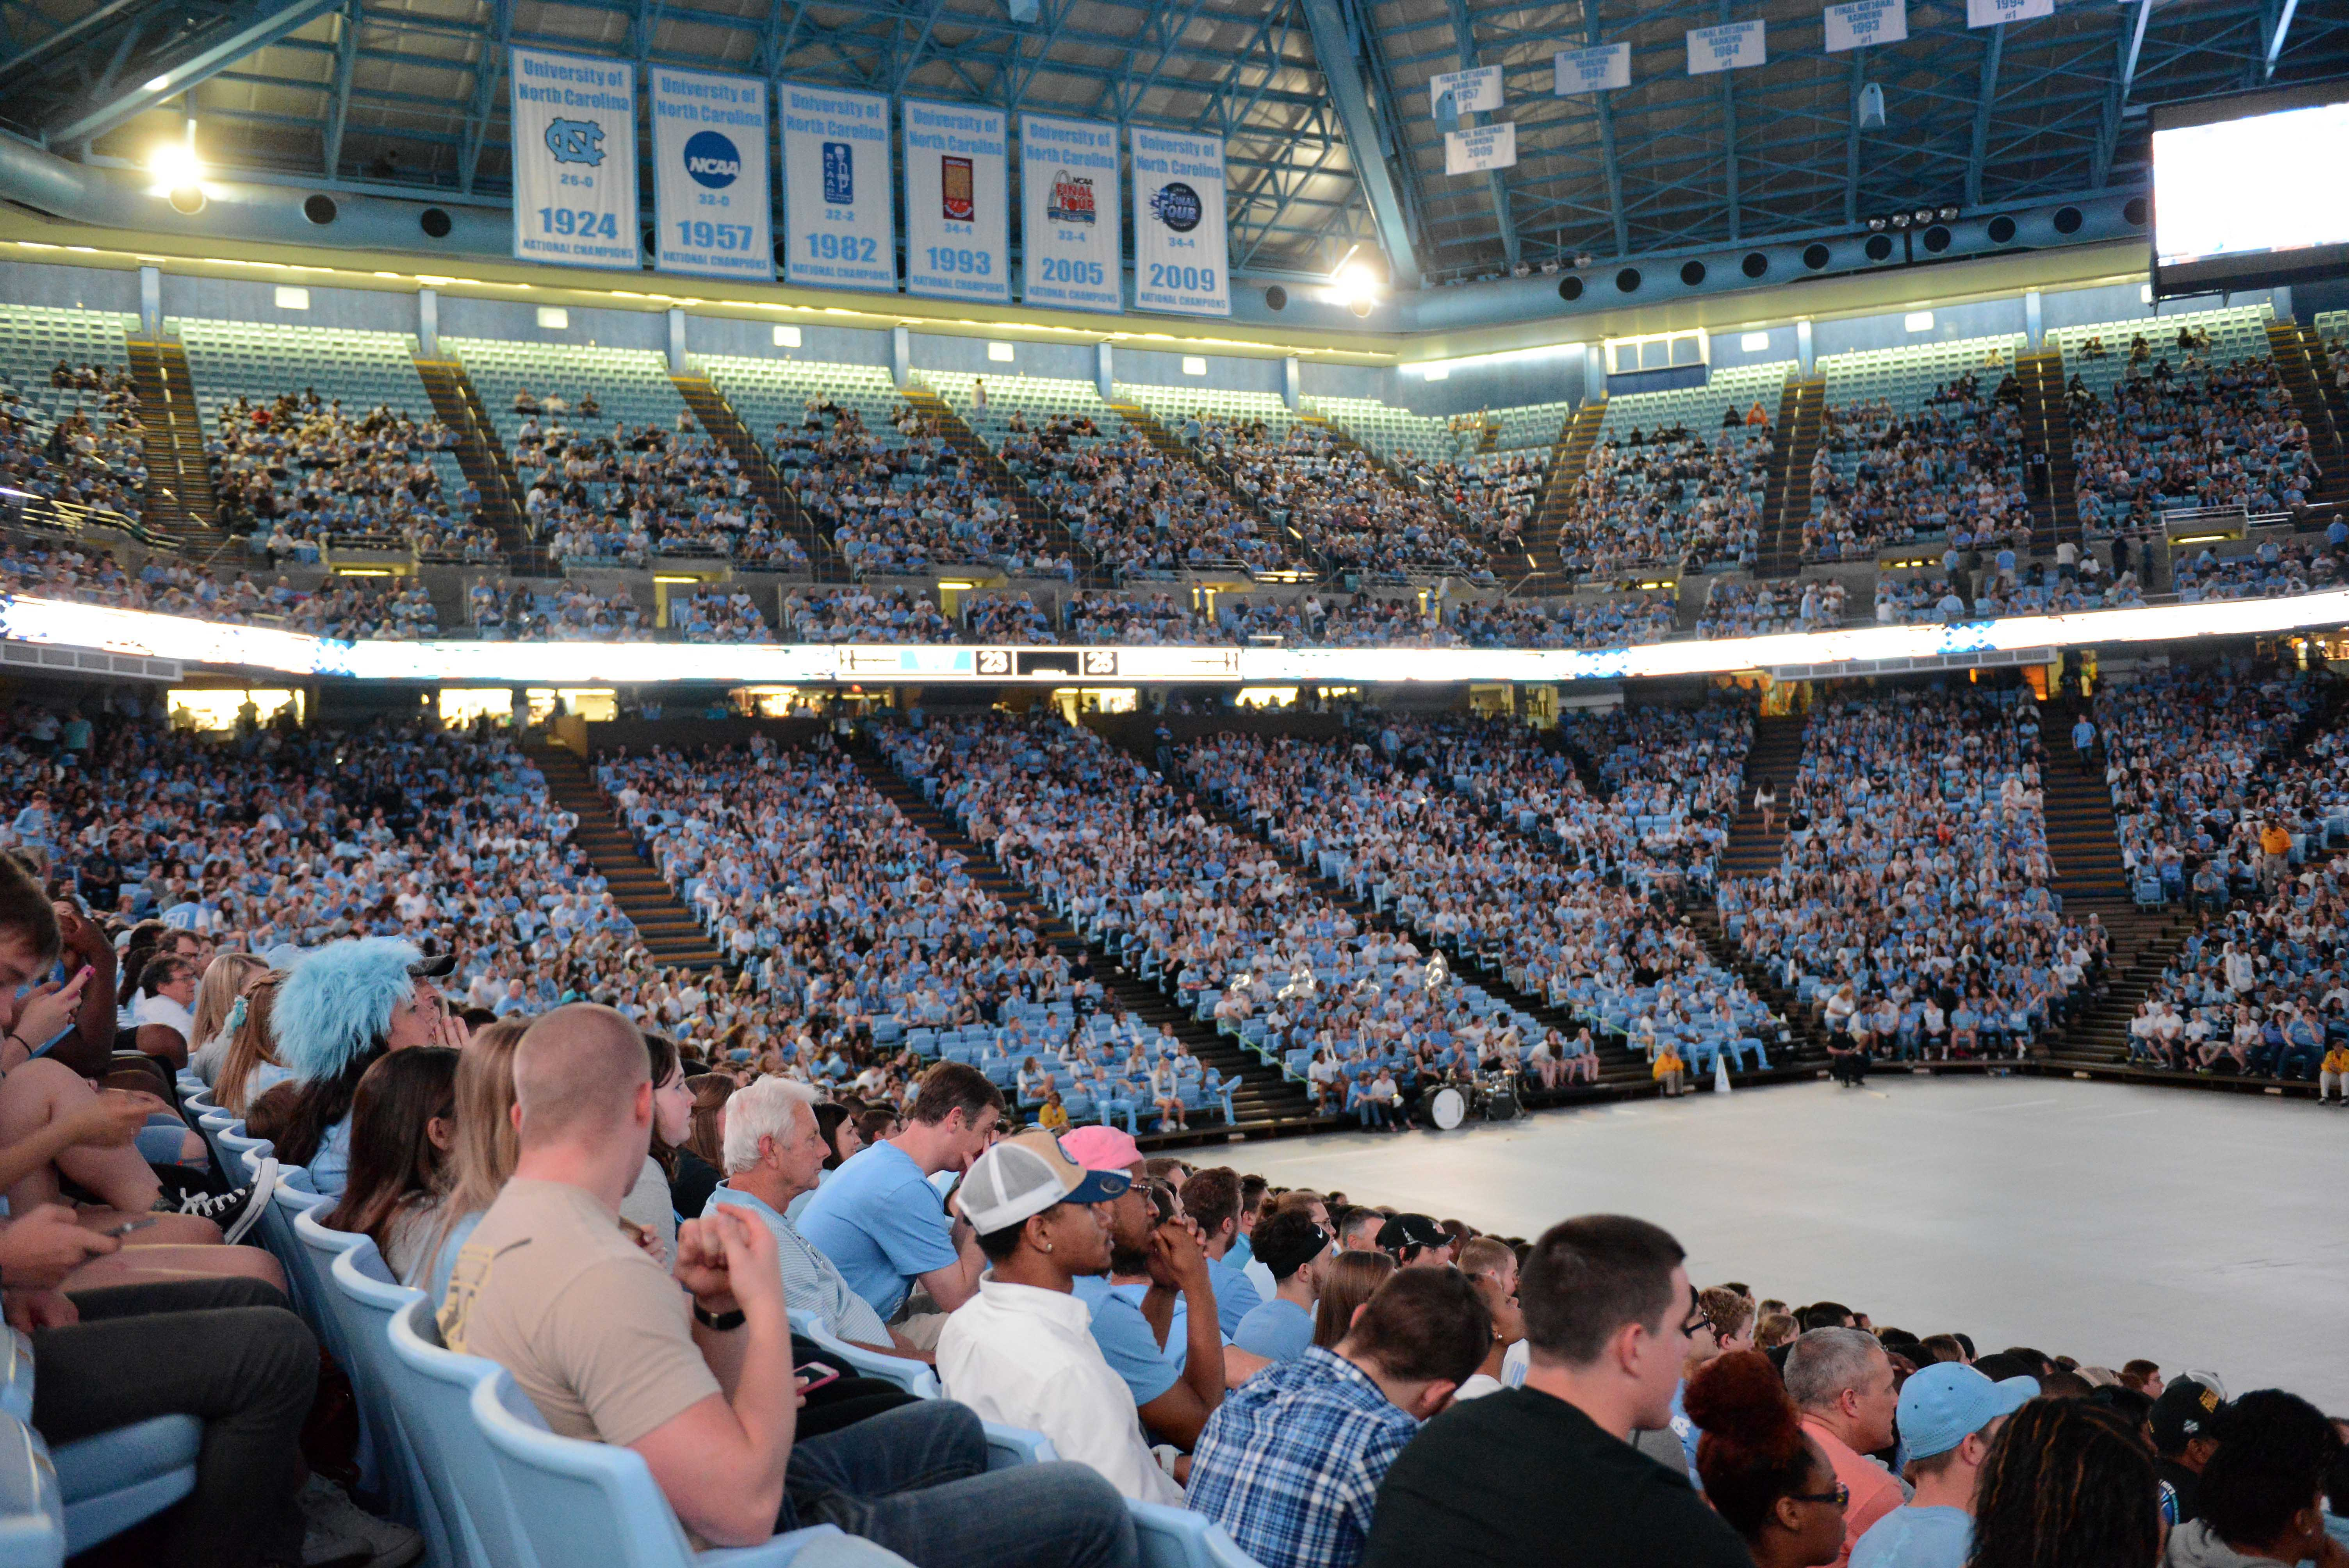 9229484-ncaa-basketball-final-four-championship-game-scenes